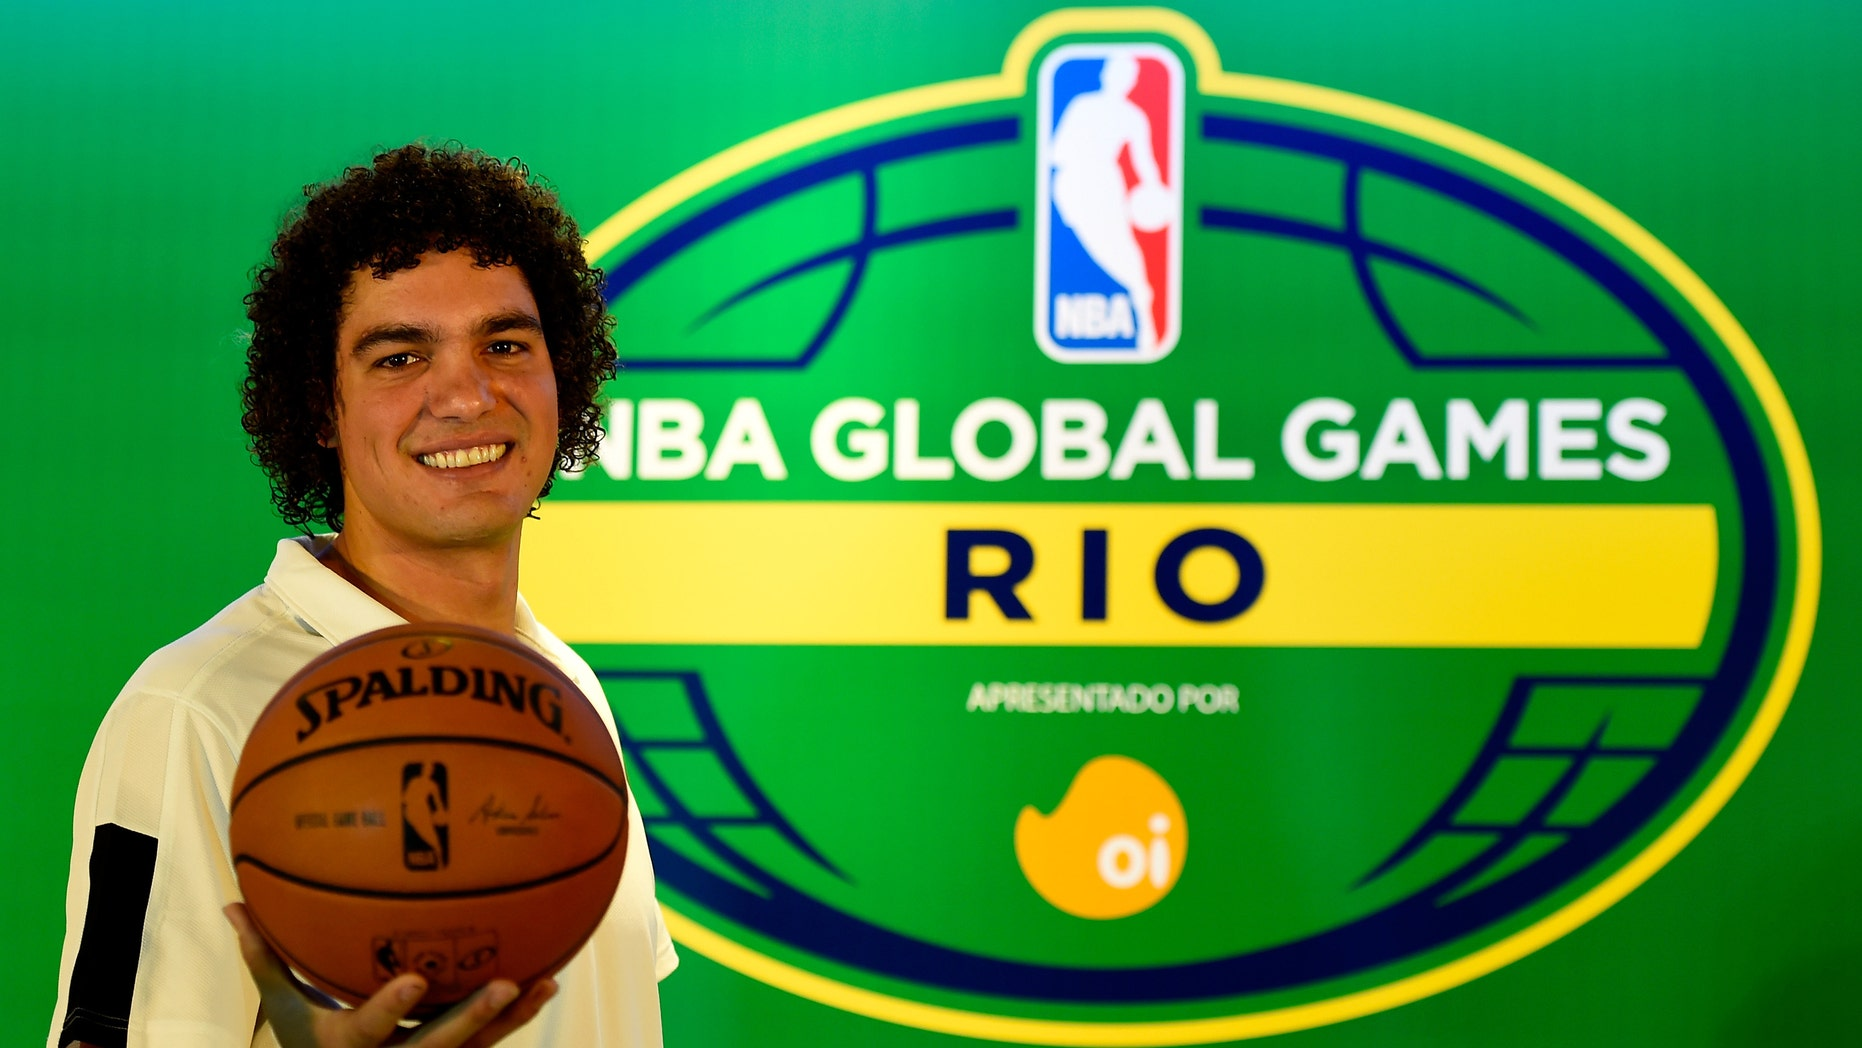 RIO DE JANEIRO, BRAZIL - AUGUST 06: Anderson Varejao attends a press conference to announce the NBA Global Games Rio 2014 Miami Heat v Cleveland Cavaliers on August 6, 2014 in Rio de Janeiro, Brazil.  (Photo by Buda Mendes/Getty Images)